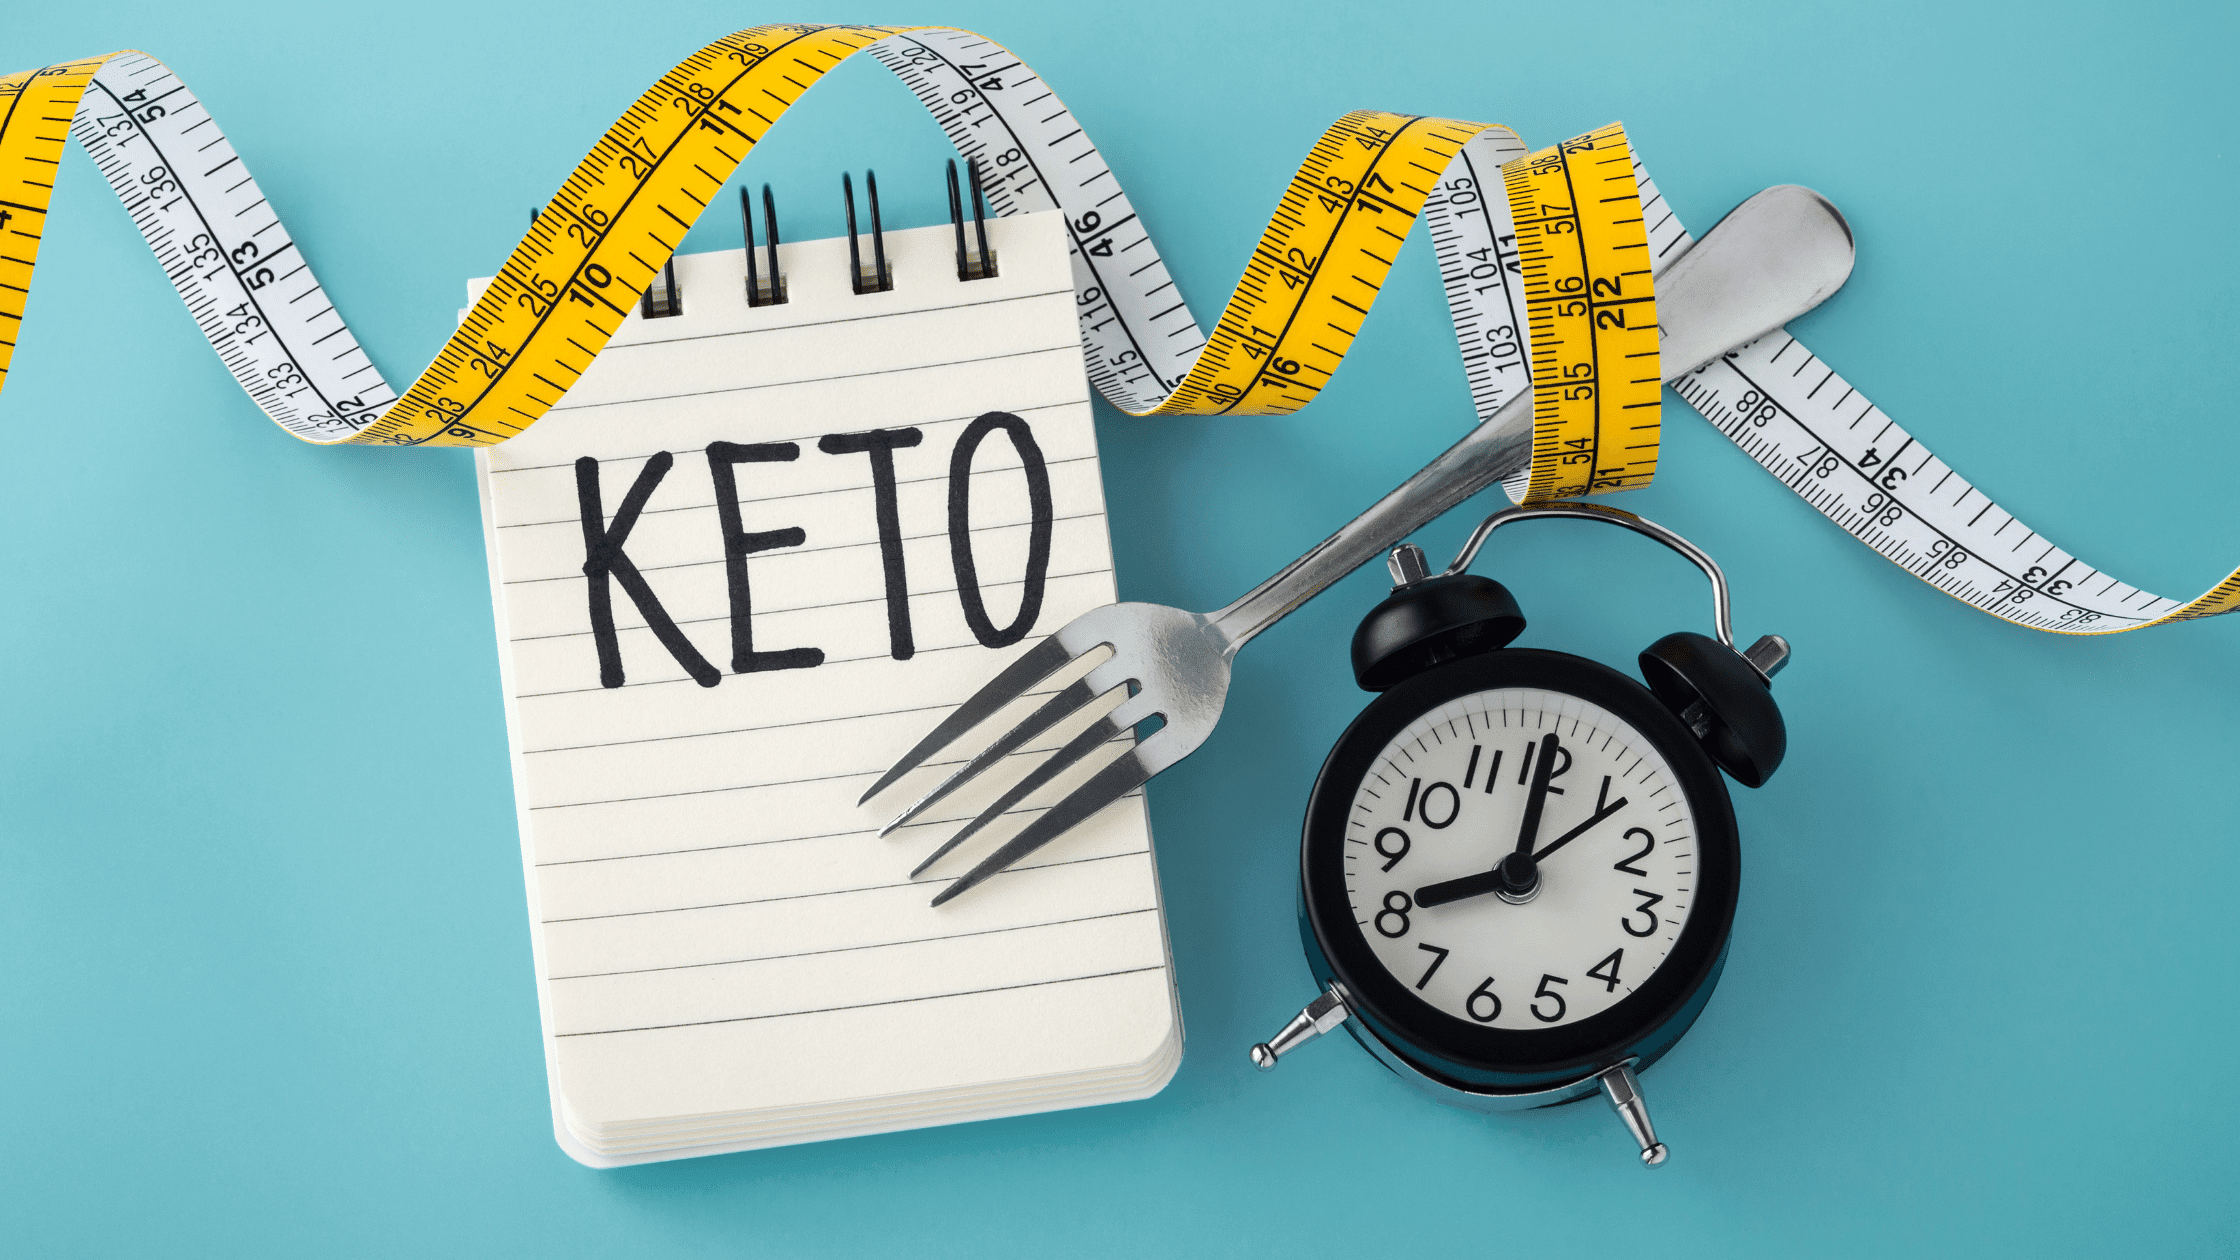 Keto Diet and Intermittent Fasting